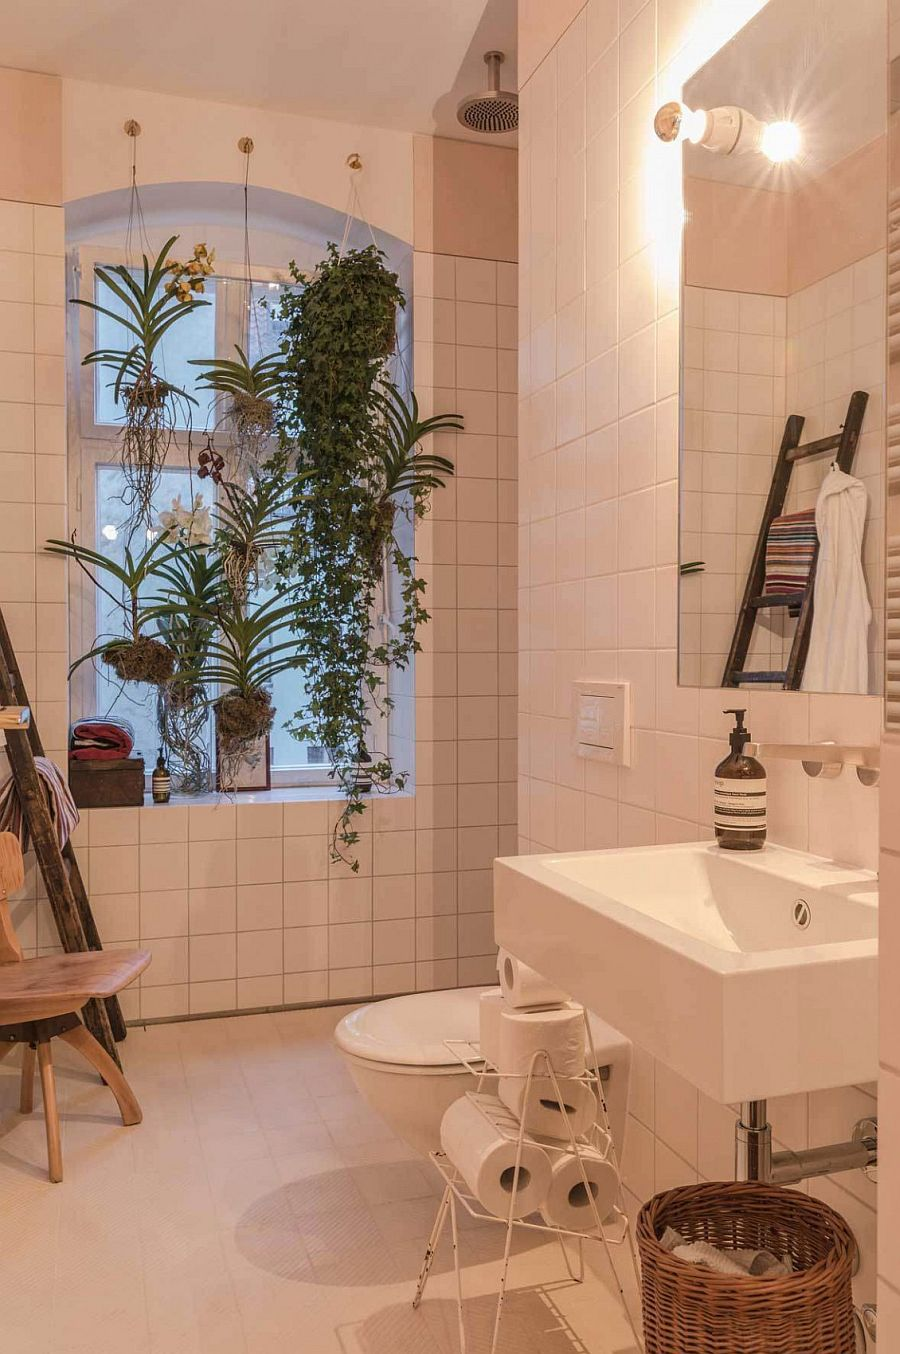 Bathroom in white filled with hanging plants